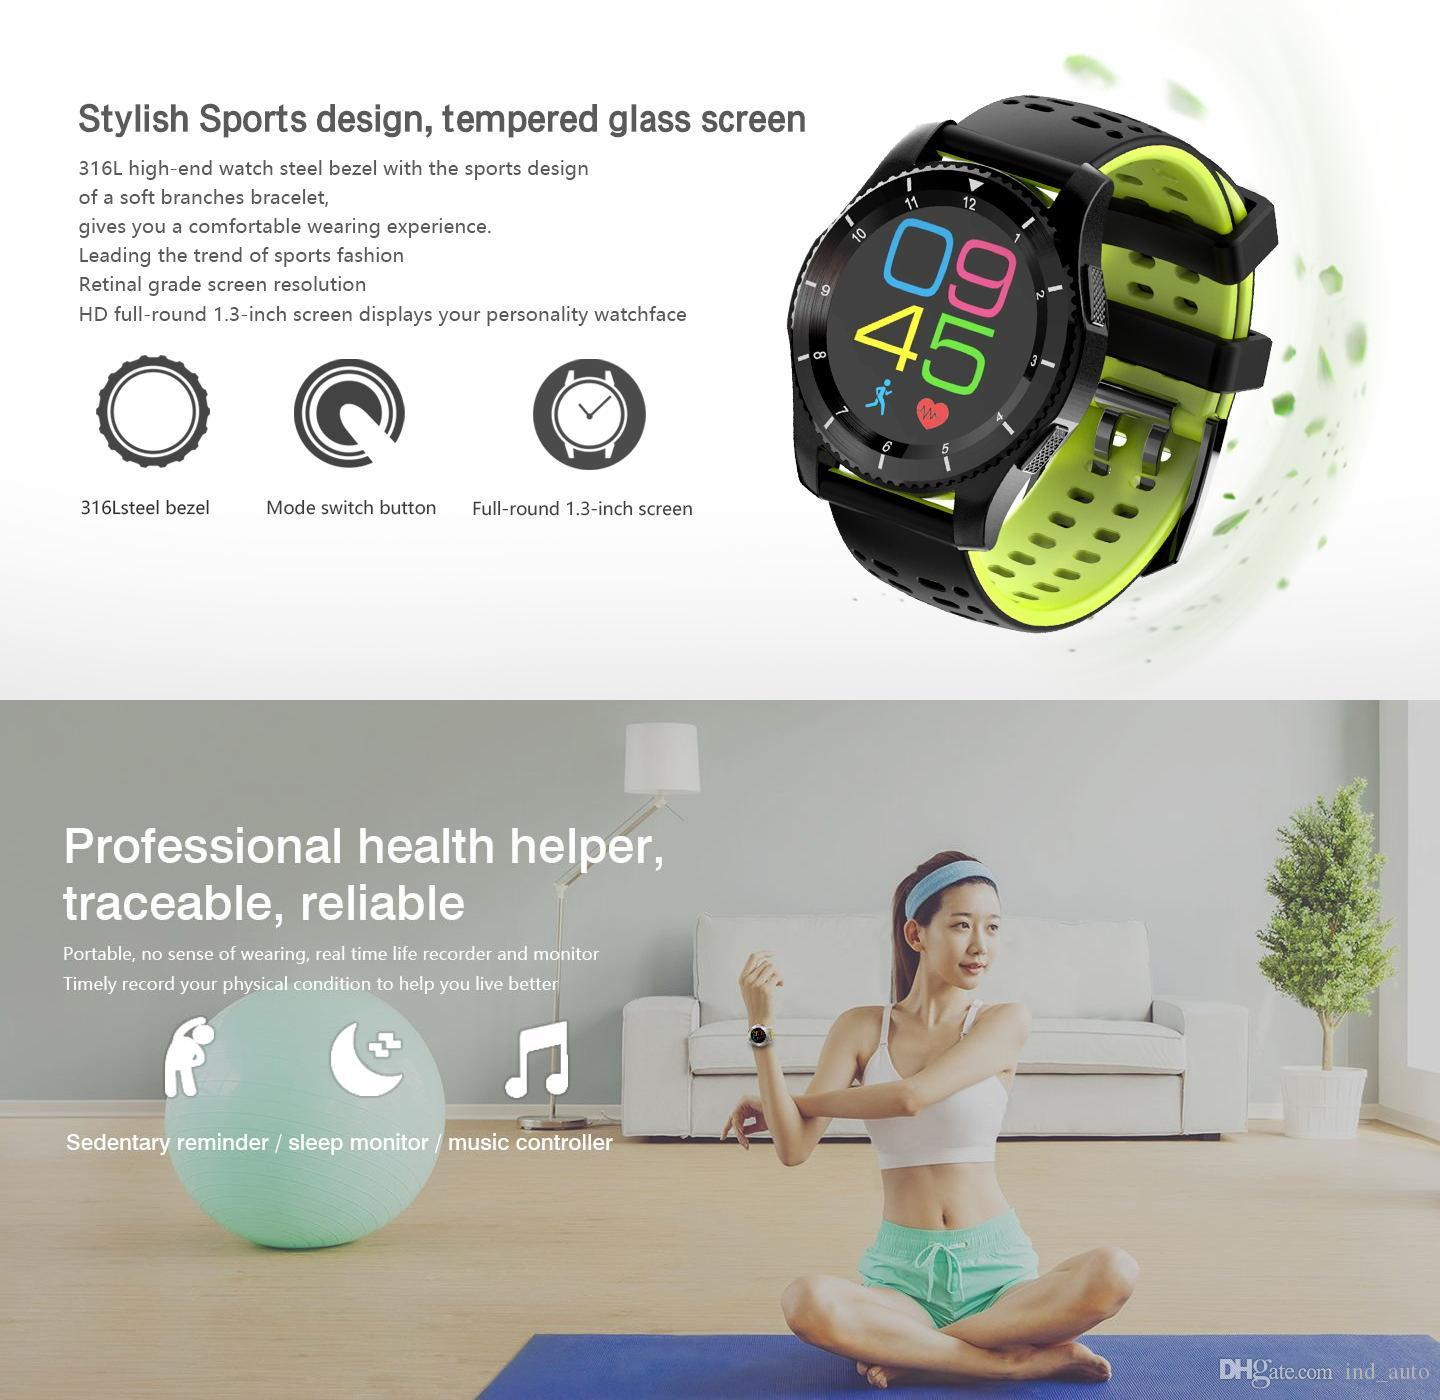 FITBIT Smart Watch Boold Pressure Smartband Heart Rate Fitness Tracker Bracelet UV/Air Pressure/Altitude Testing Watch GS8 For IOS & Andriod